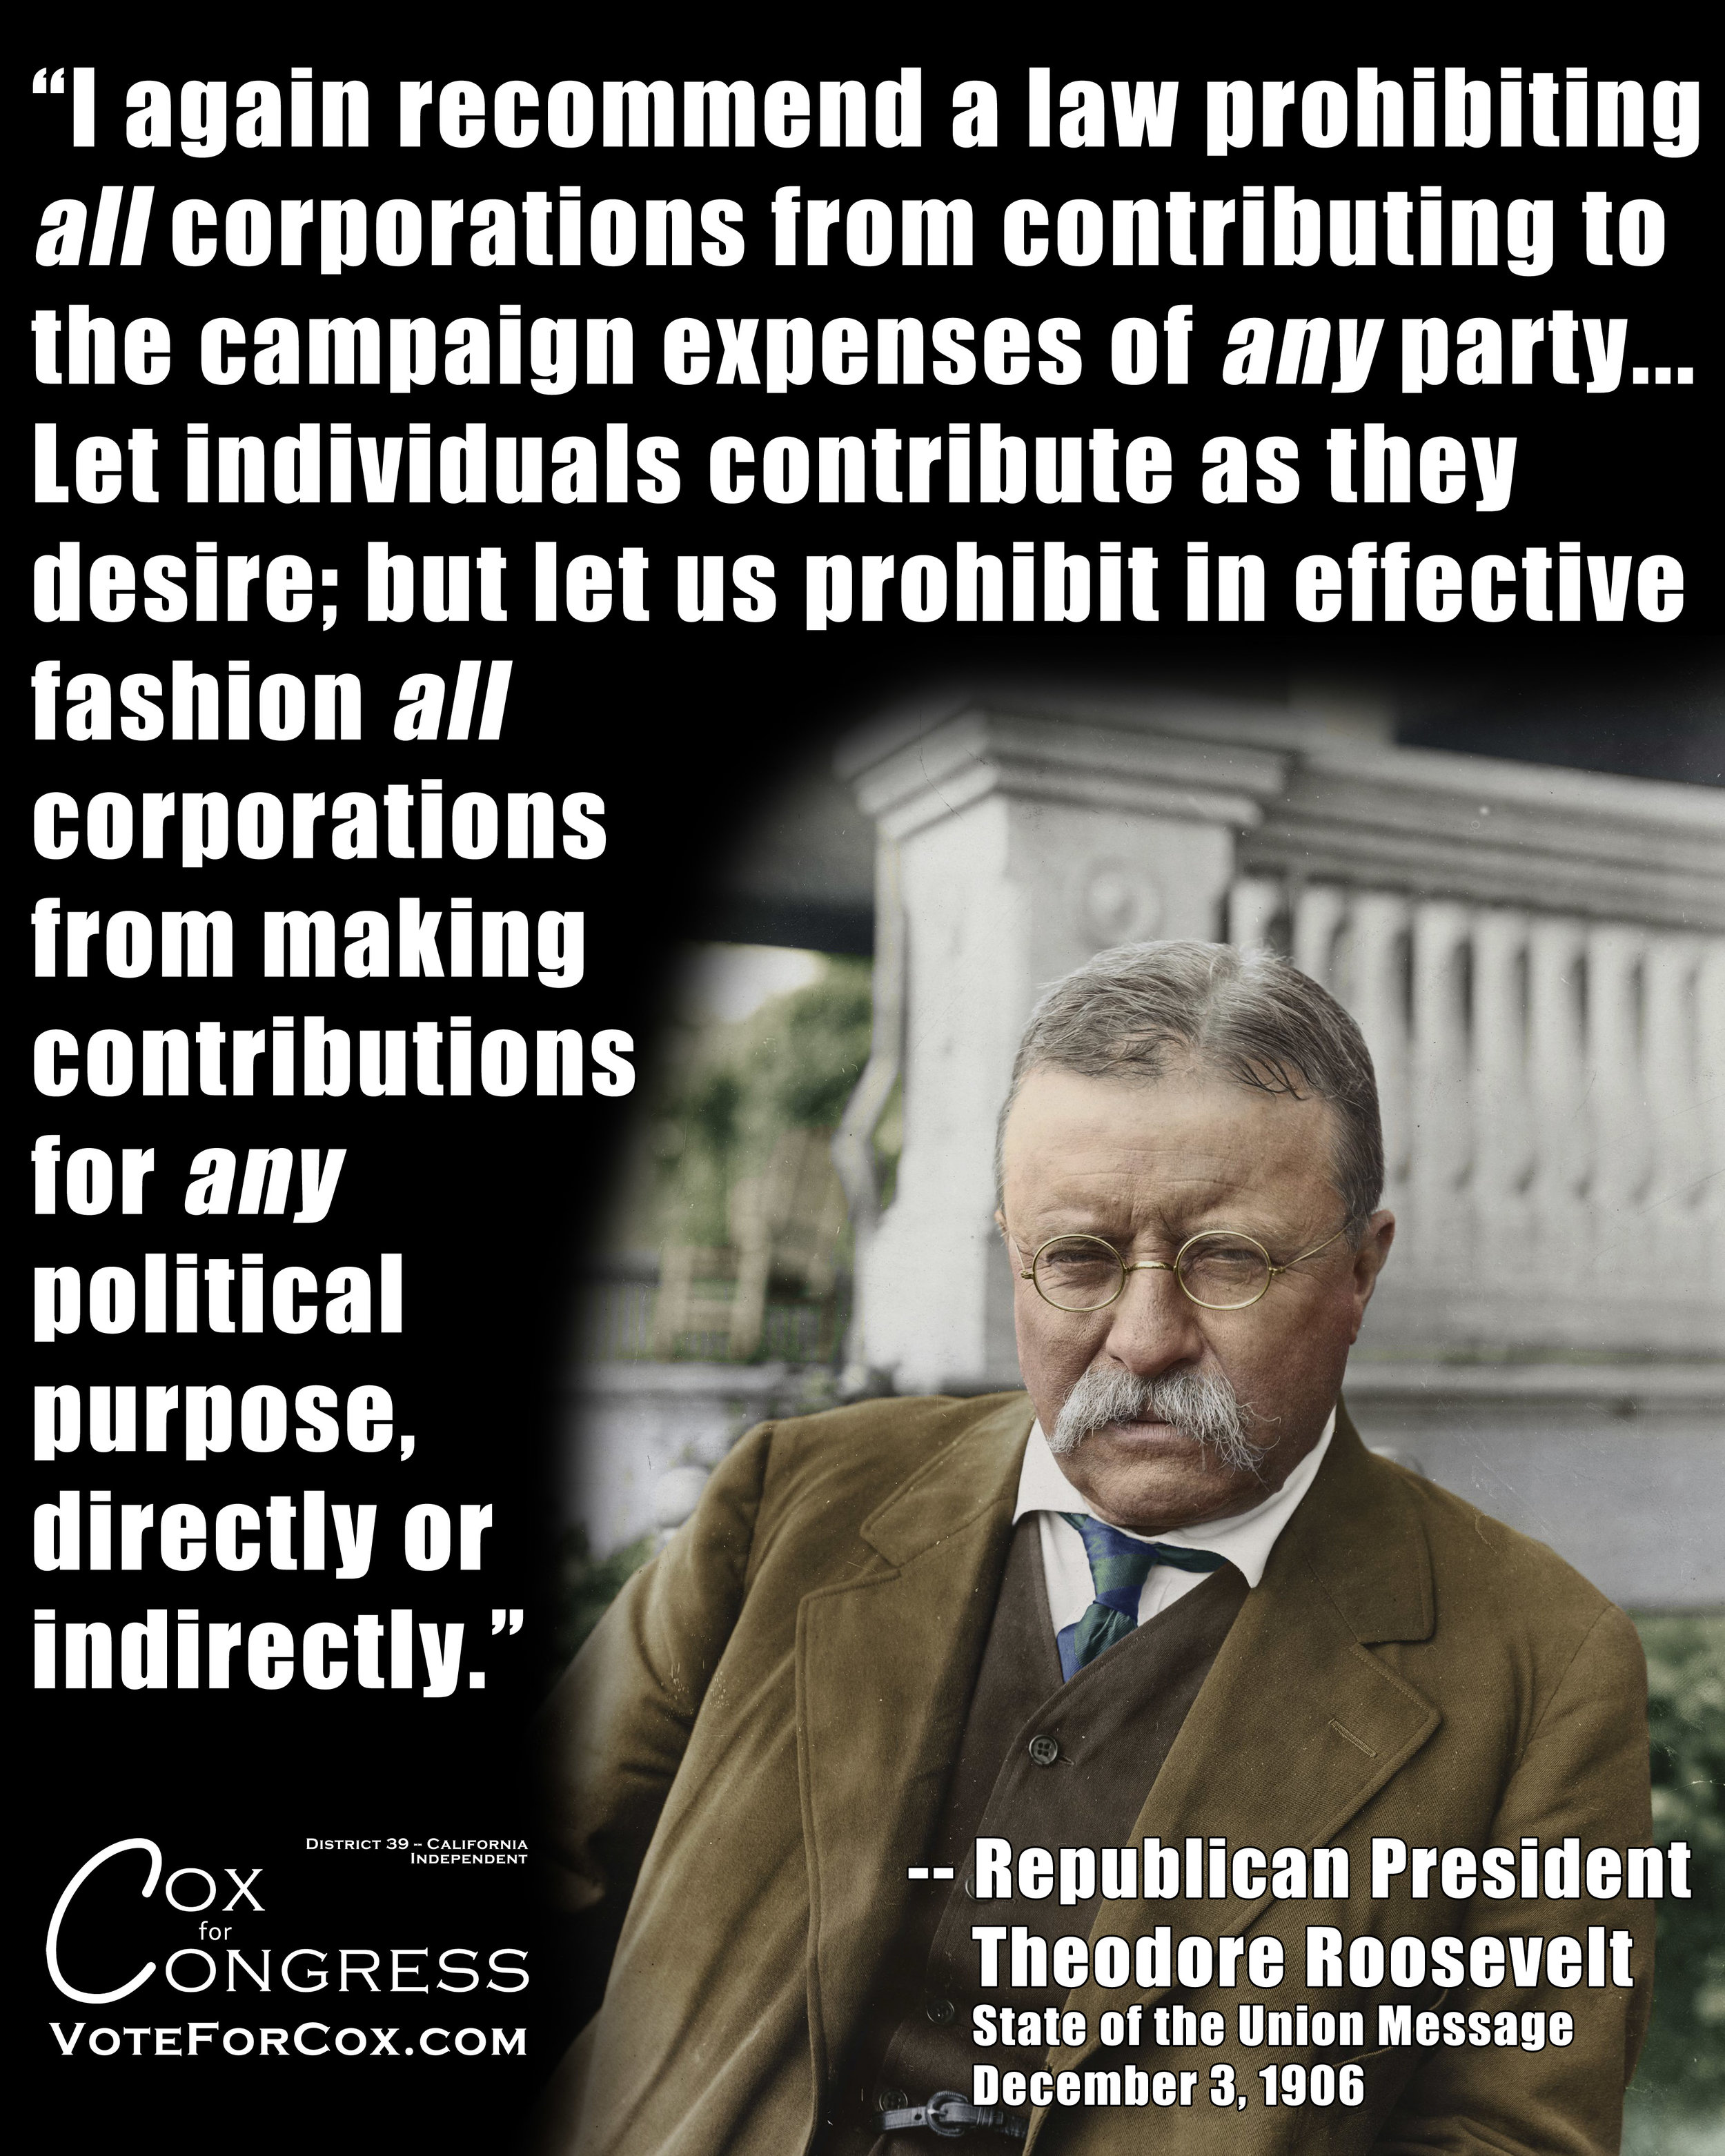 This is still necessary, it's just that now we have to overturn or side-step the disastrous Citizens United Supreme Court decision in order to do it. But it  has  to be done.